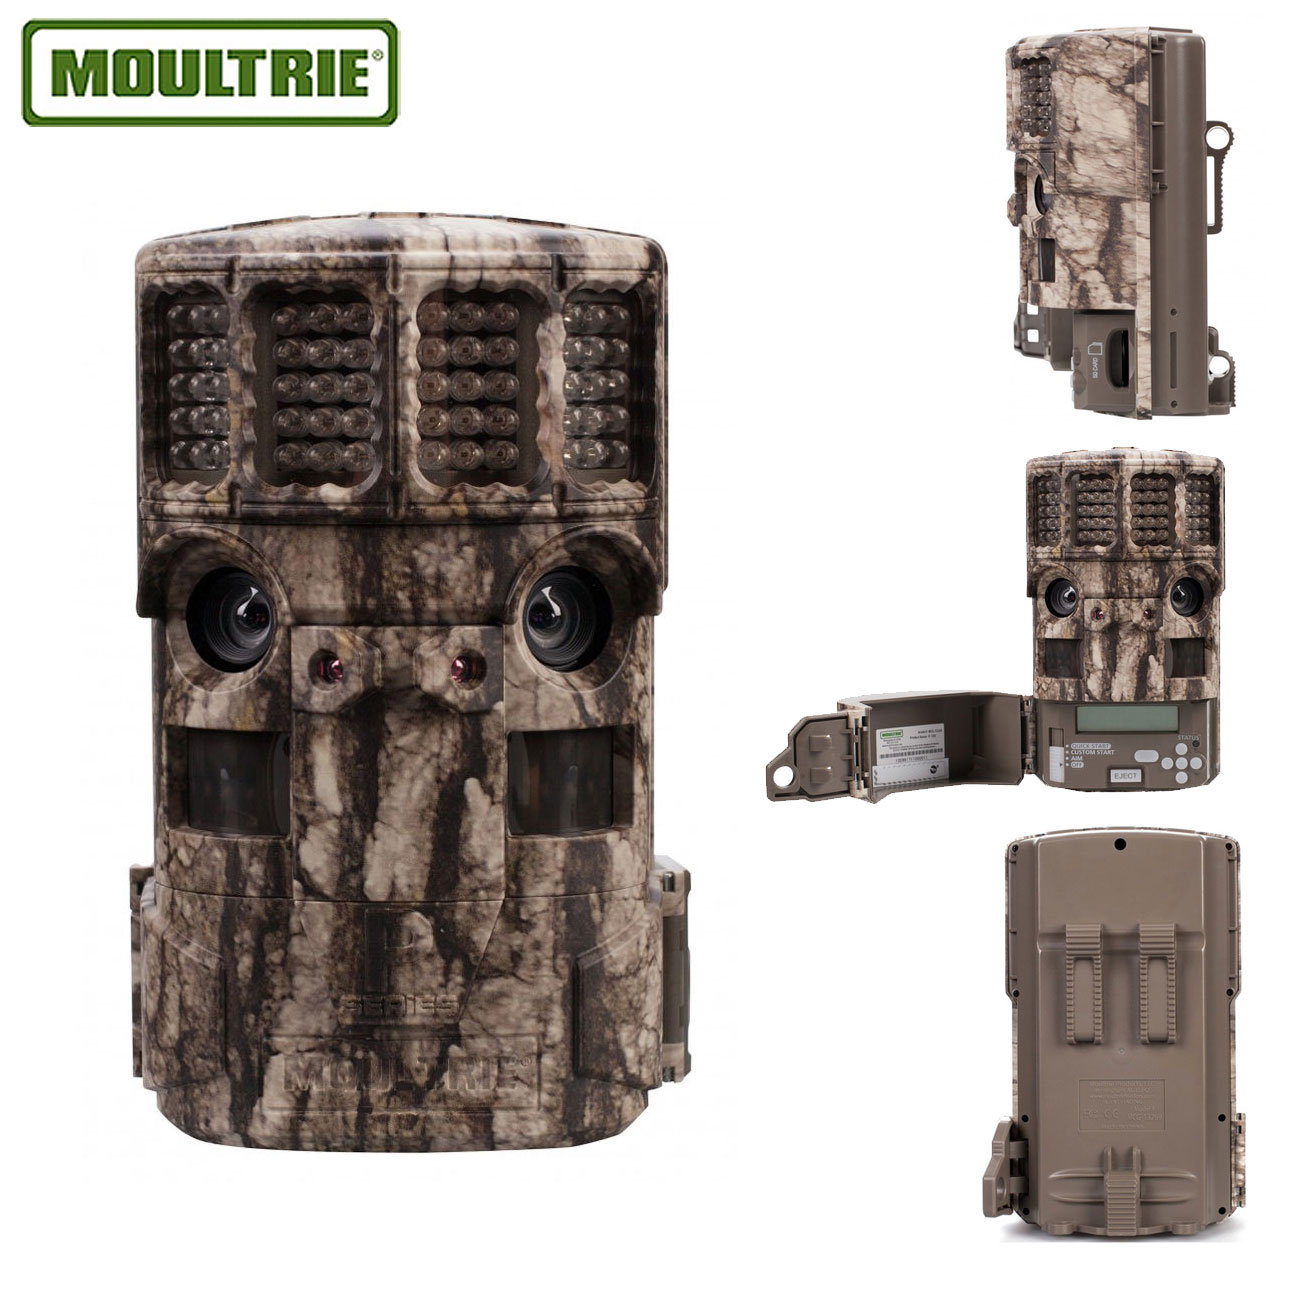 Moultrie P-120i Panoramic Game Camera - Bark Camo